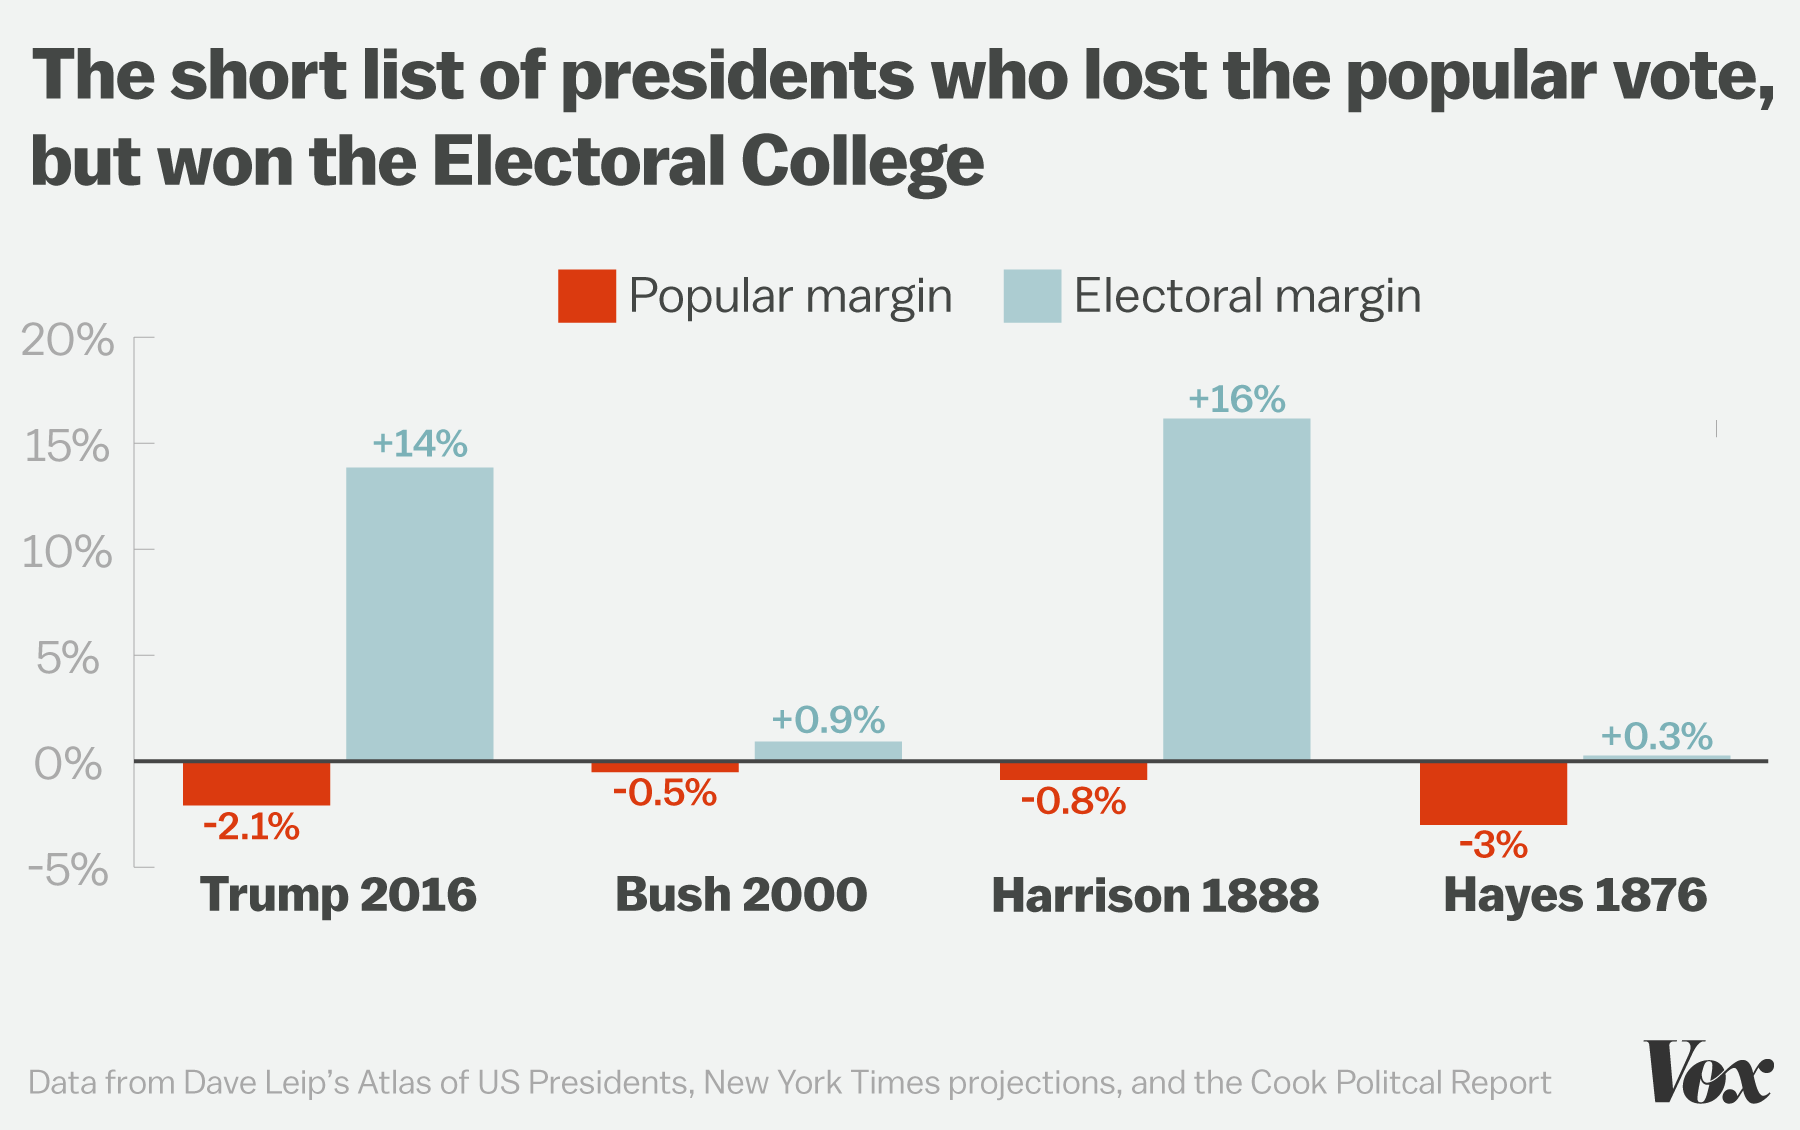 Presidents Winning Without Popular Vote - FactCheck.org